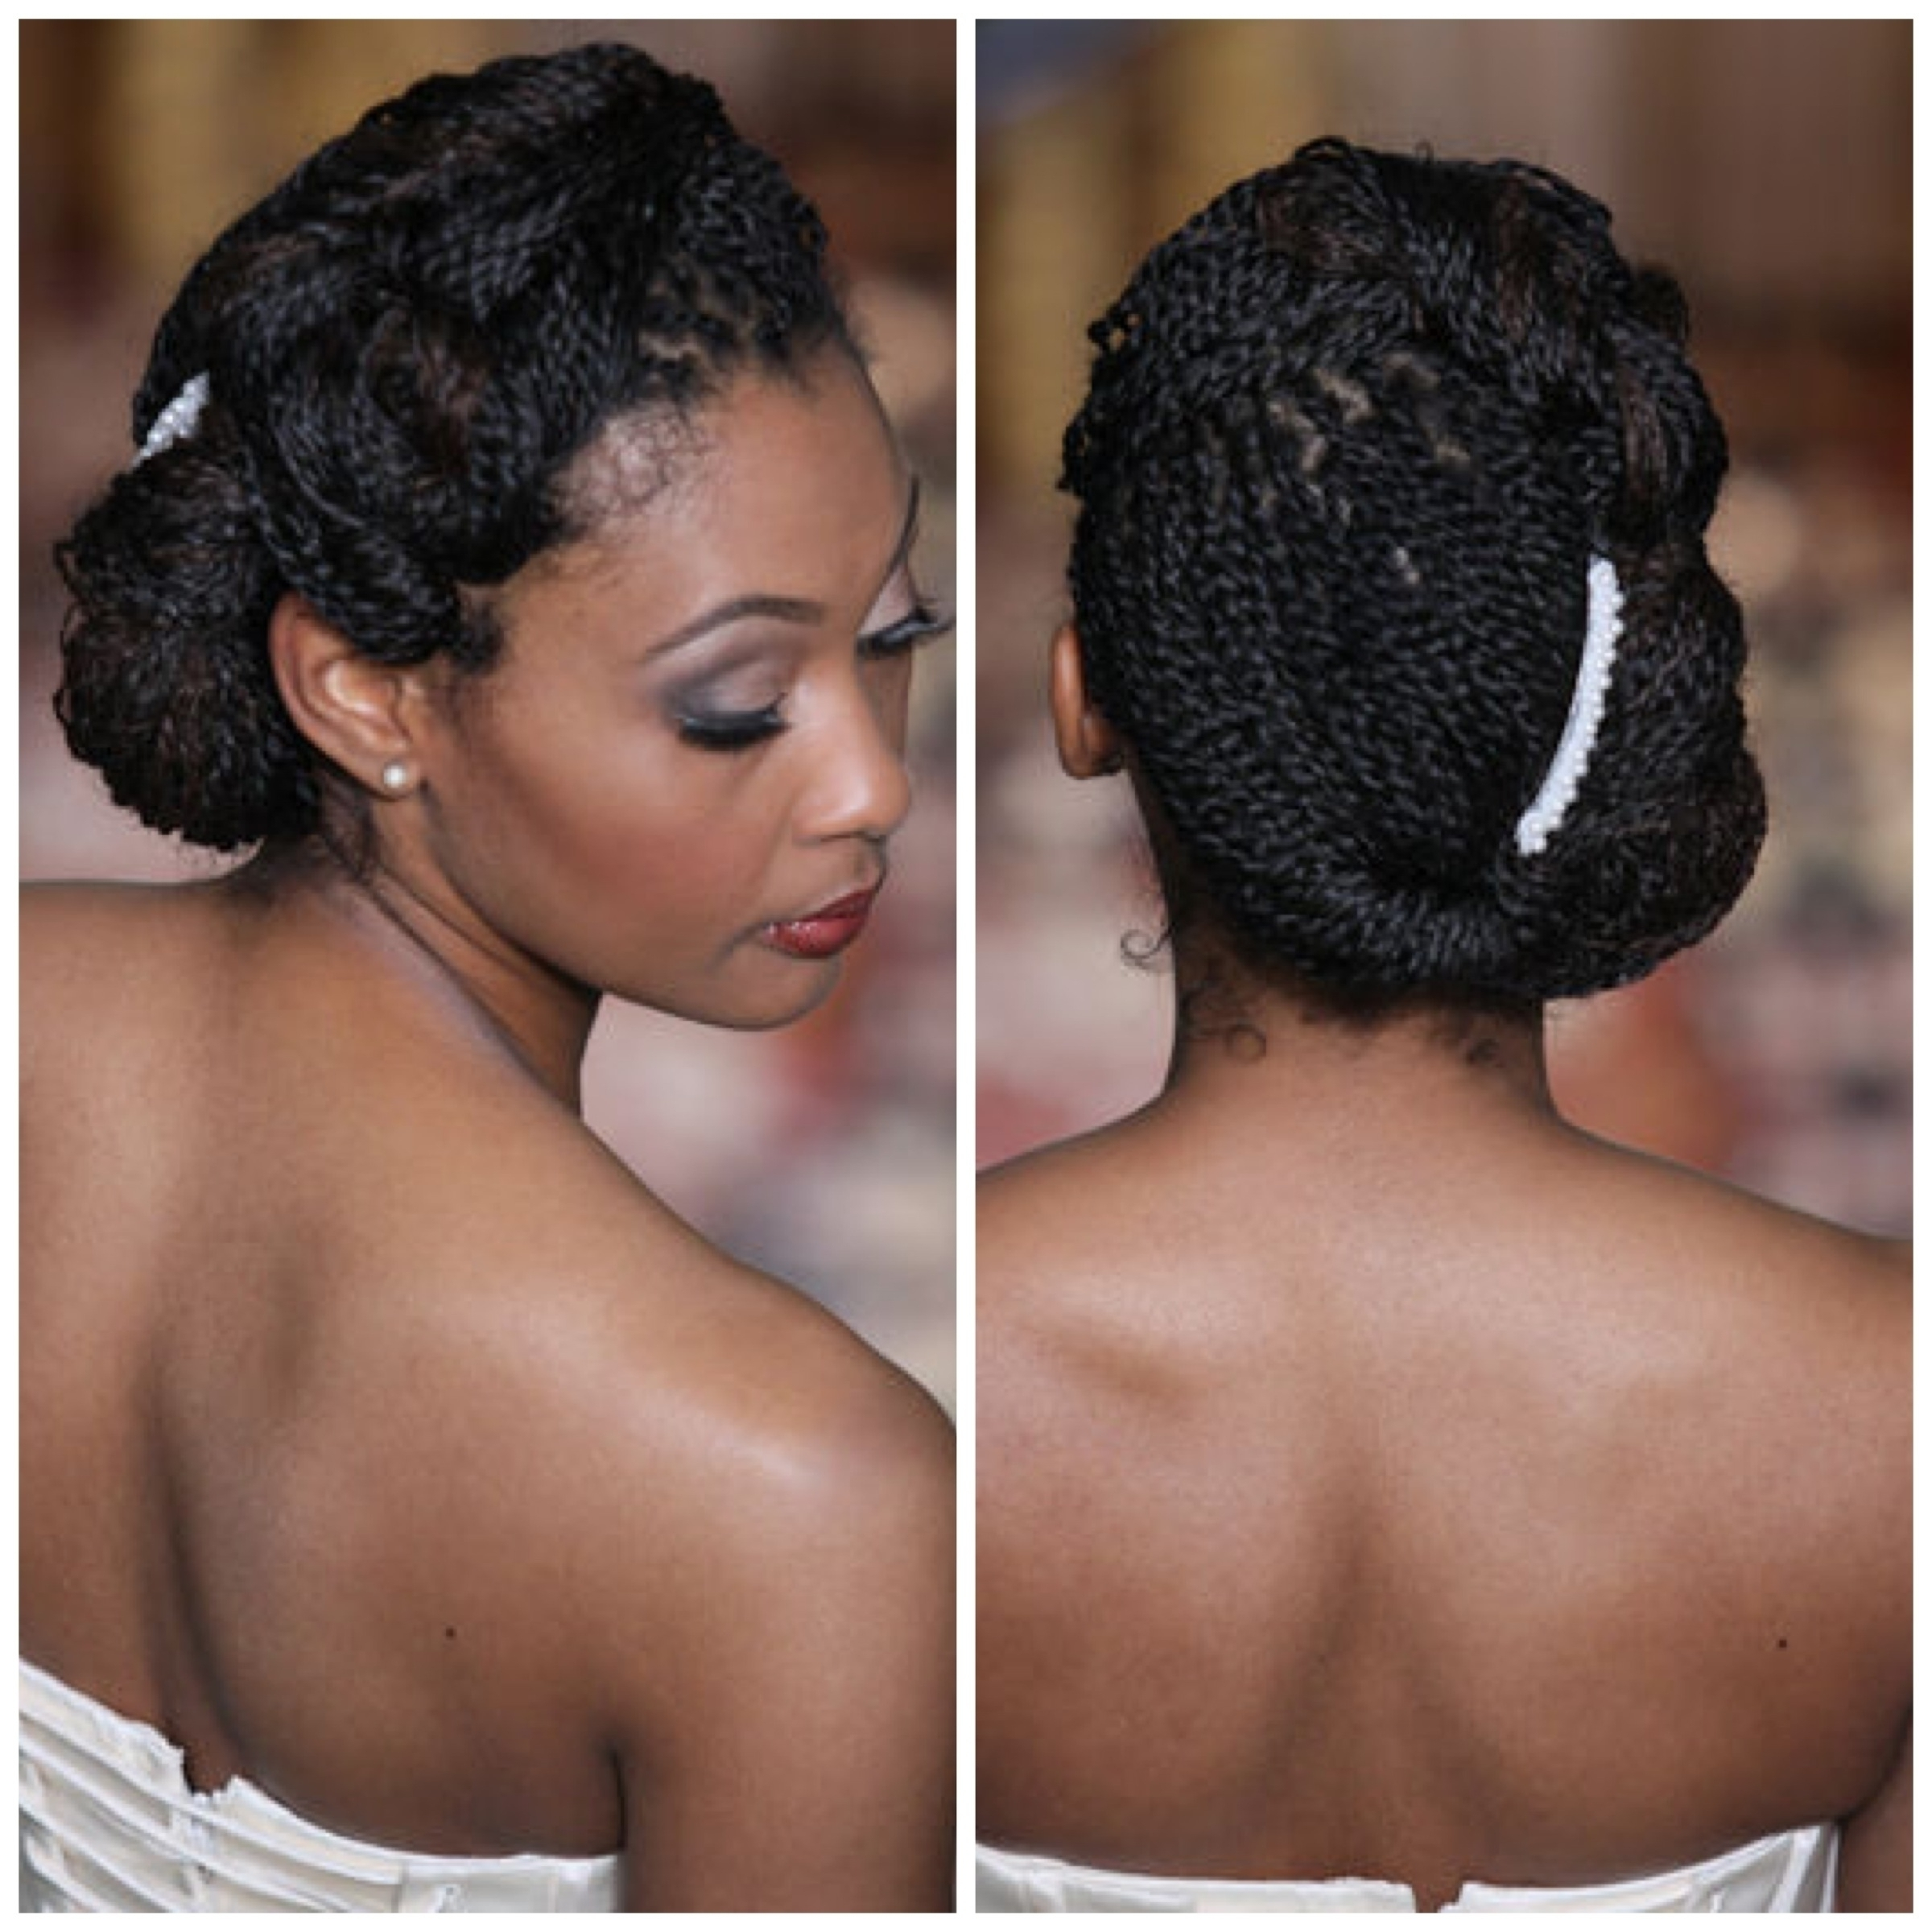 Hairstyles Braids African American Updo Hairstyles For Black Women 2017 Within African American Updo Wedding Hairstyles (View 9 of 15)